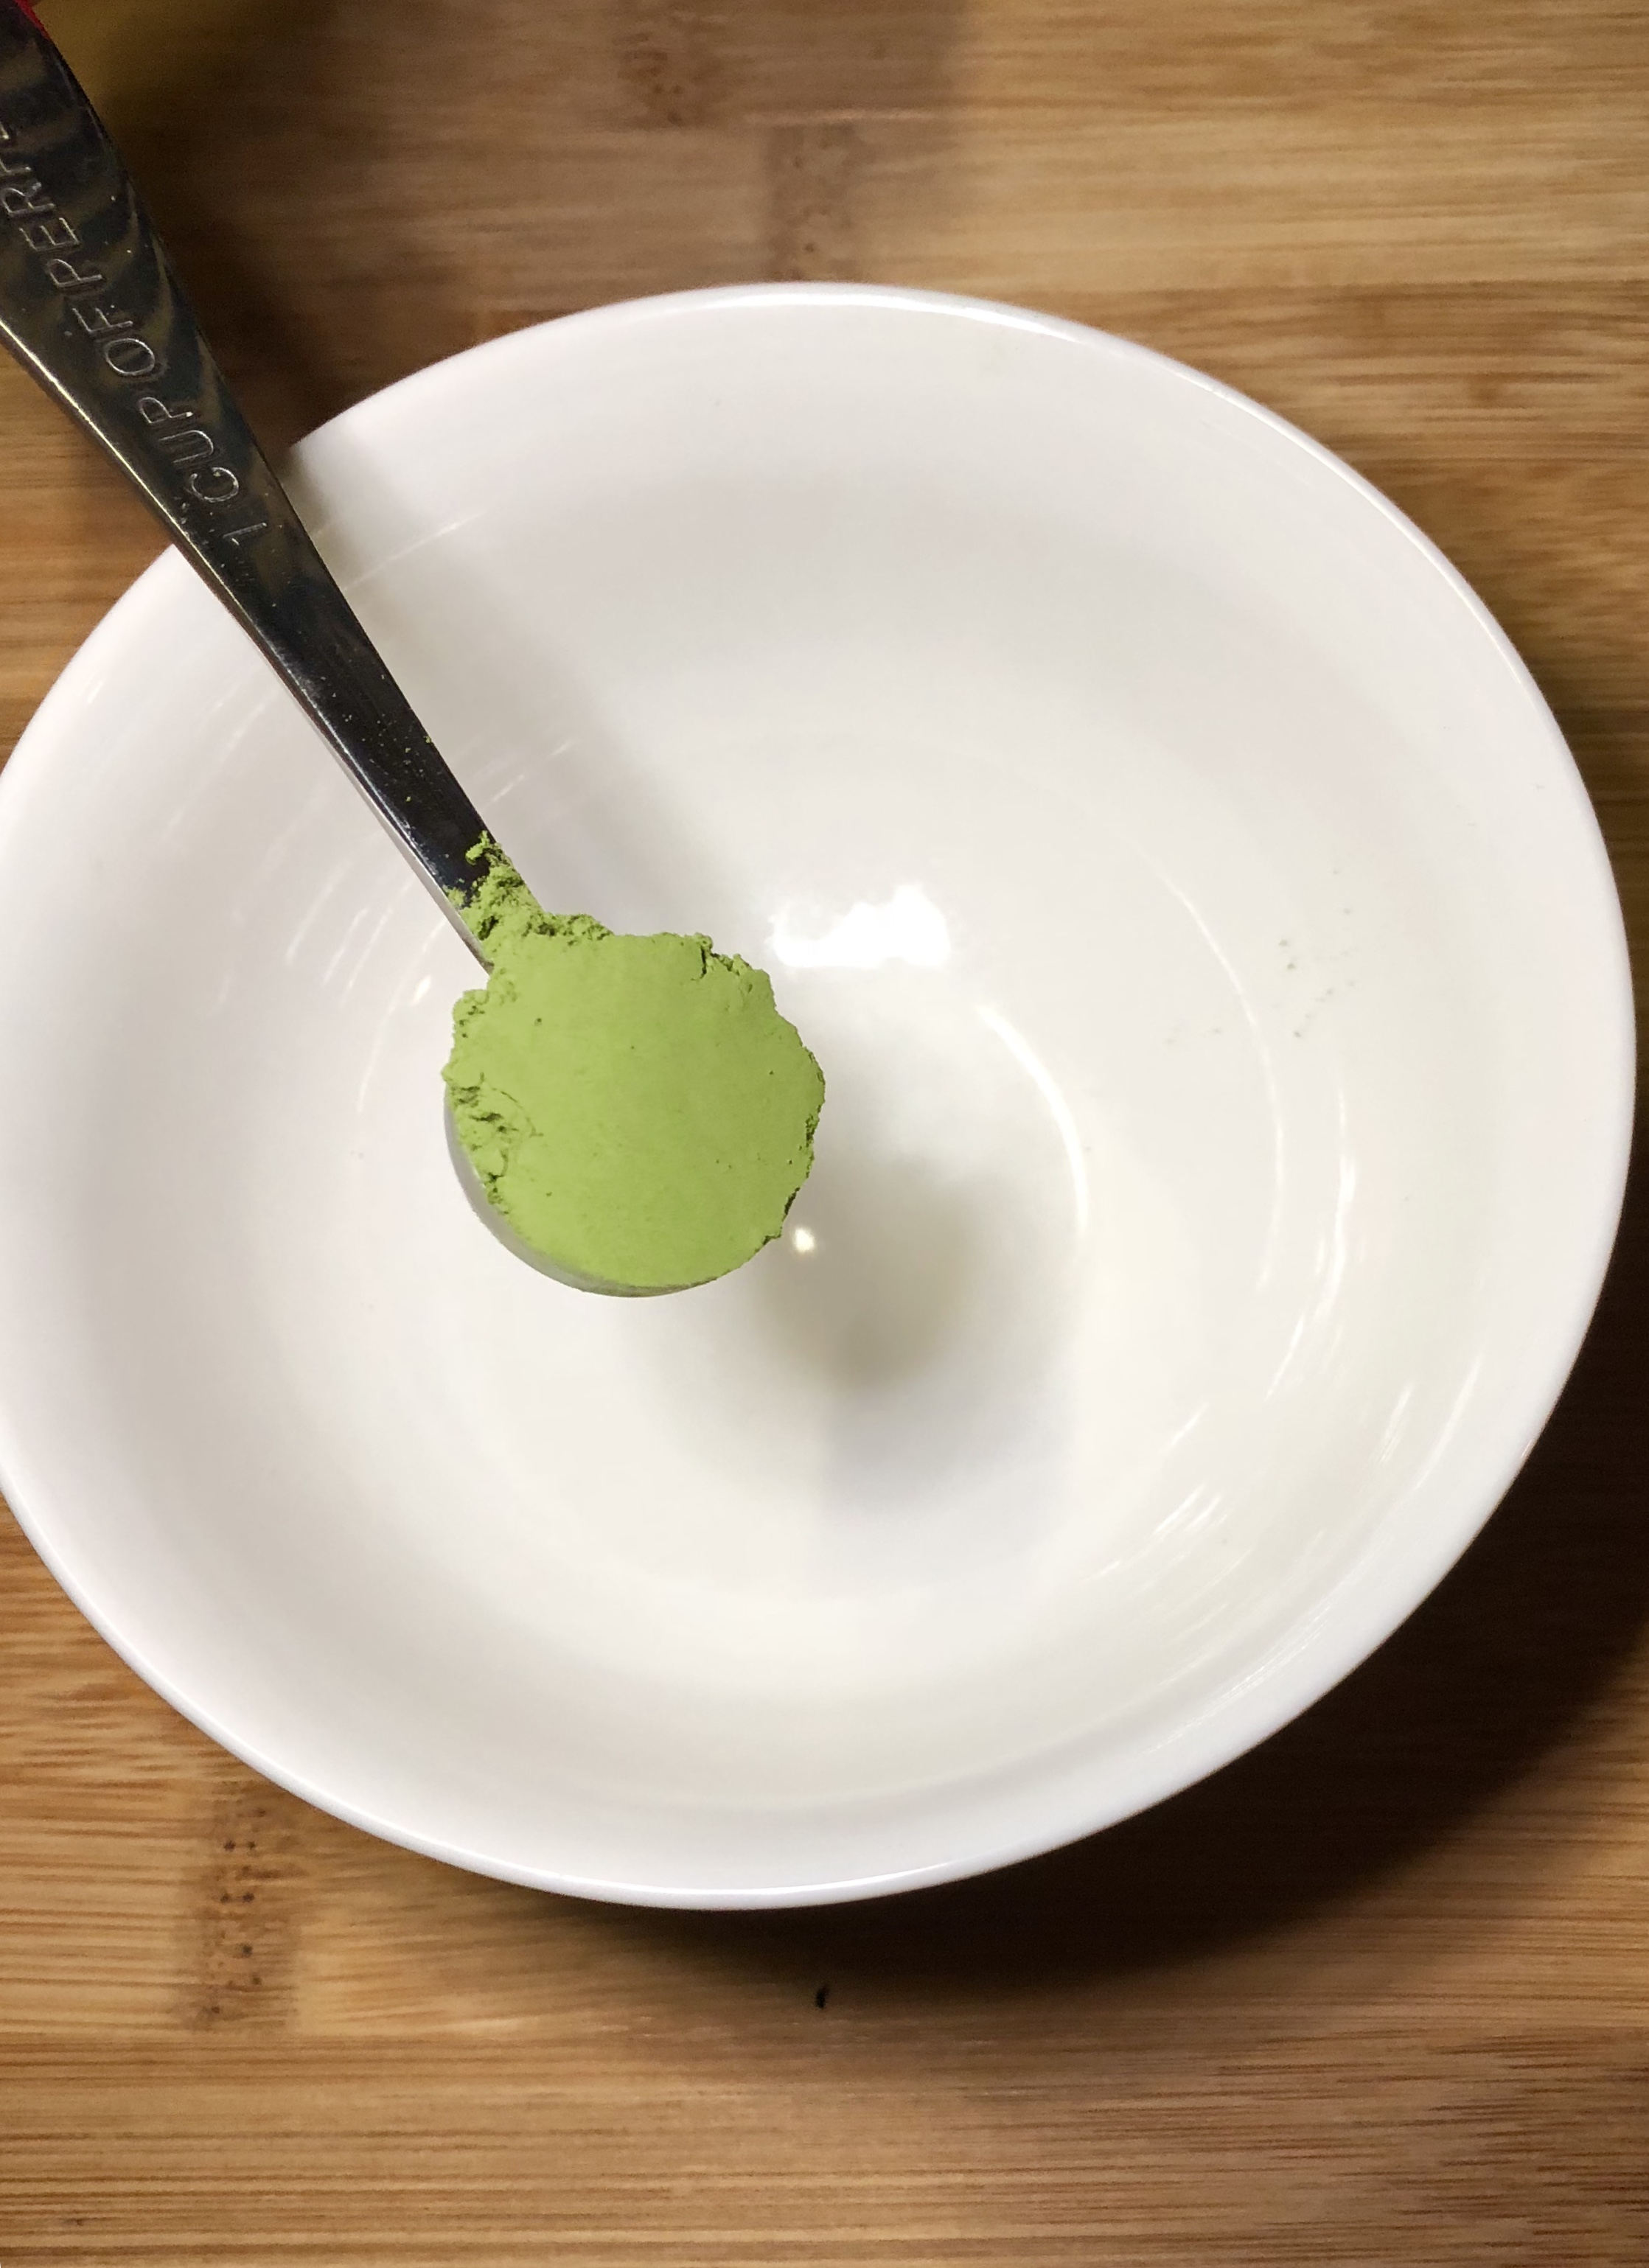 Matcha  being added.